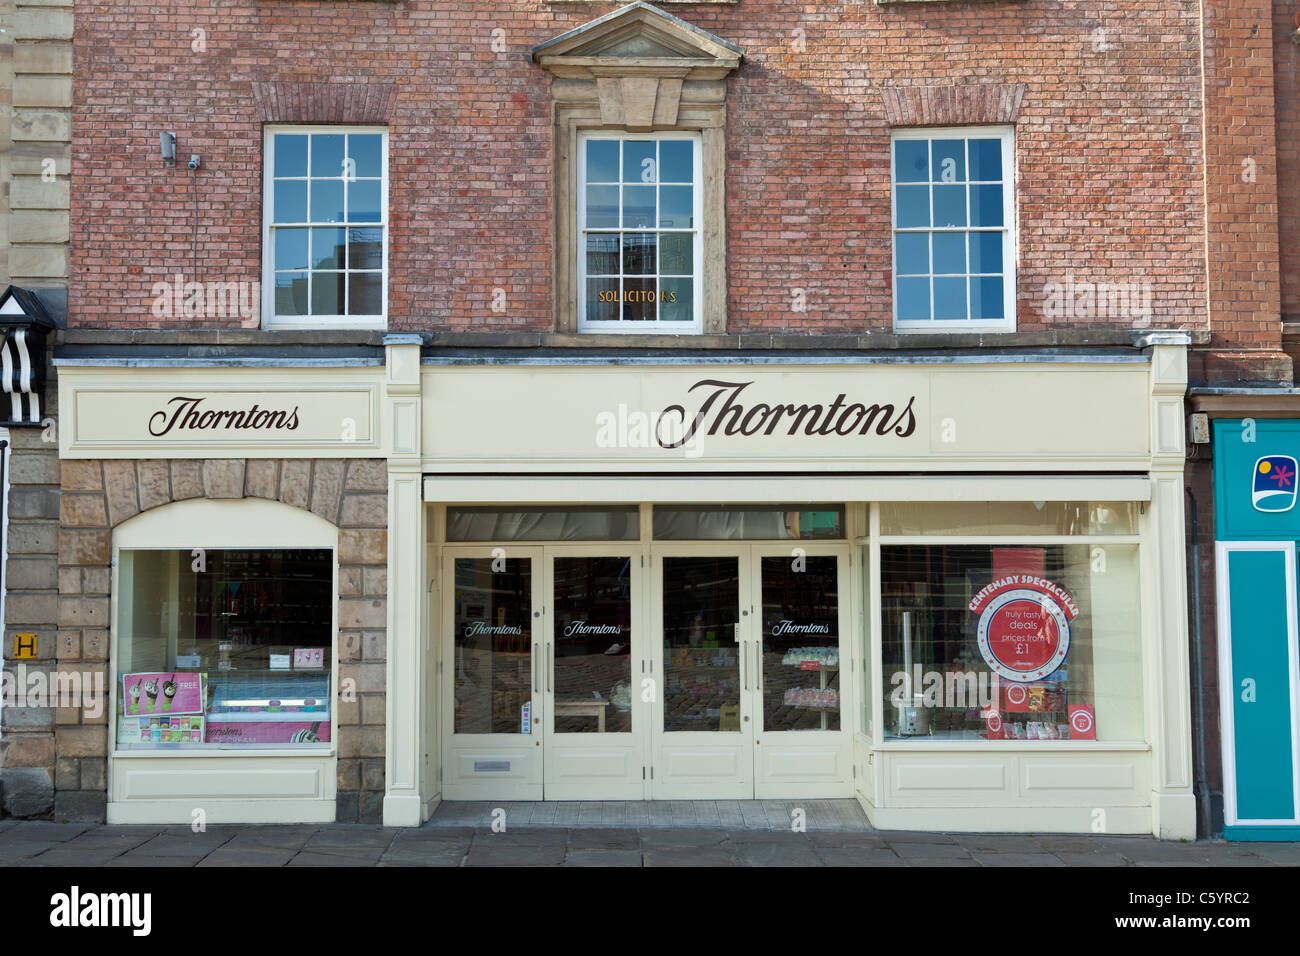 Thorntons Chocolates, Chesterfield - Stock Image